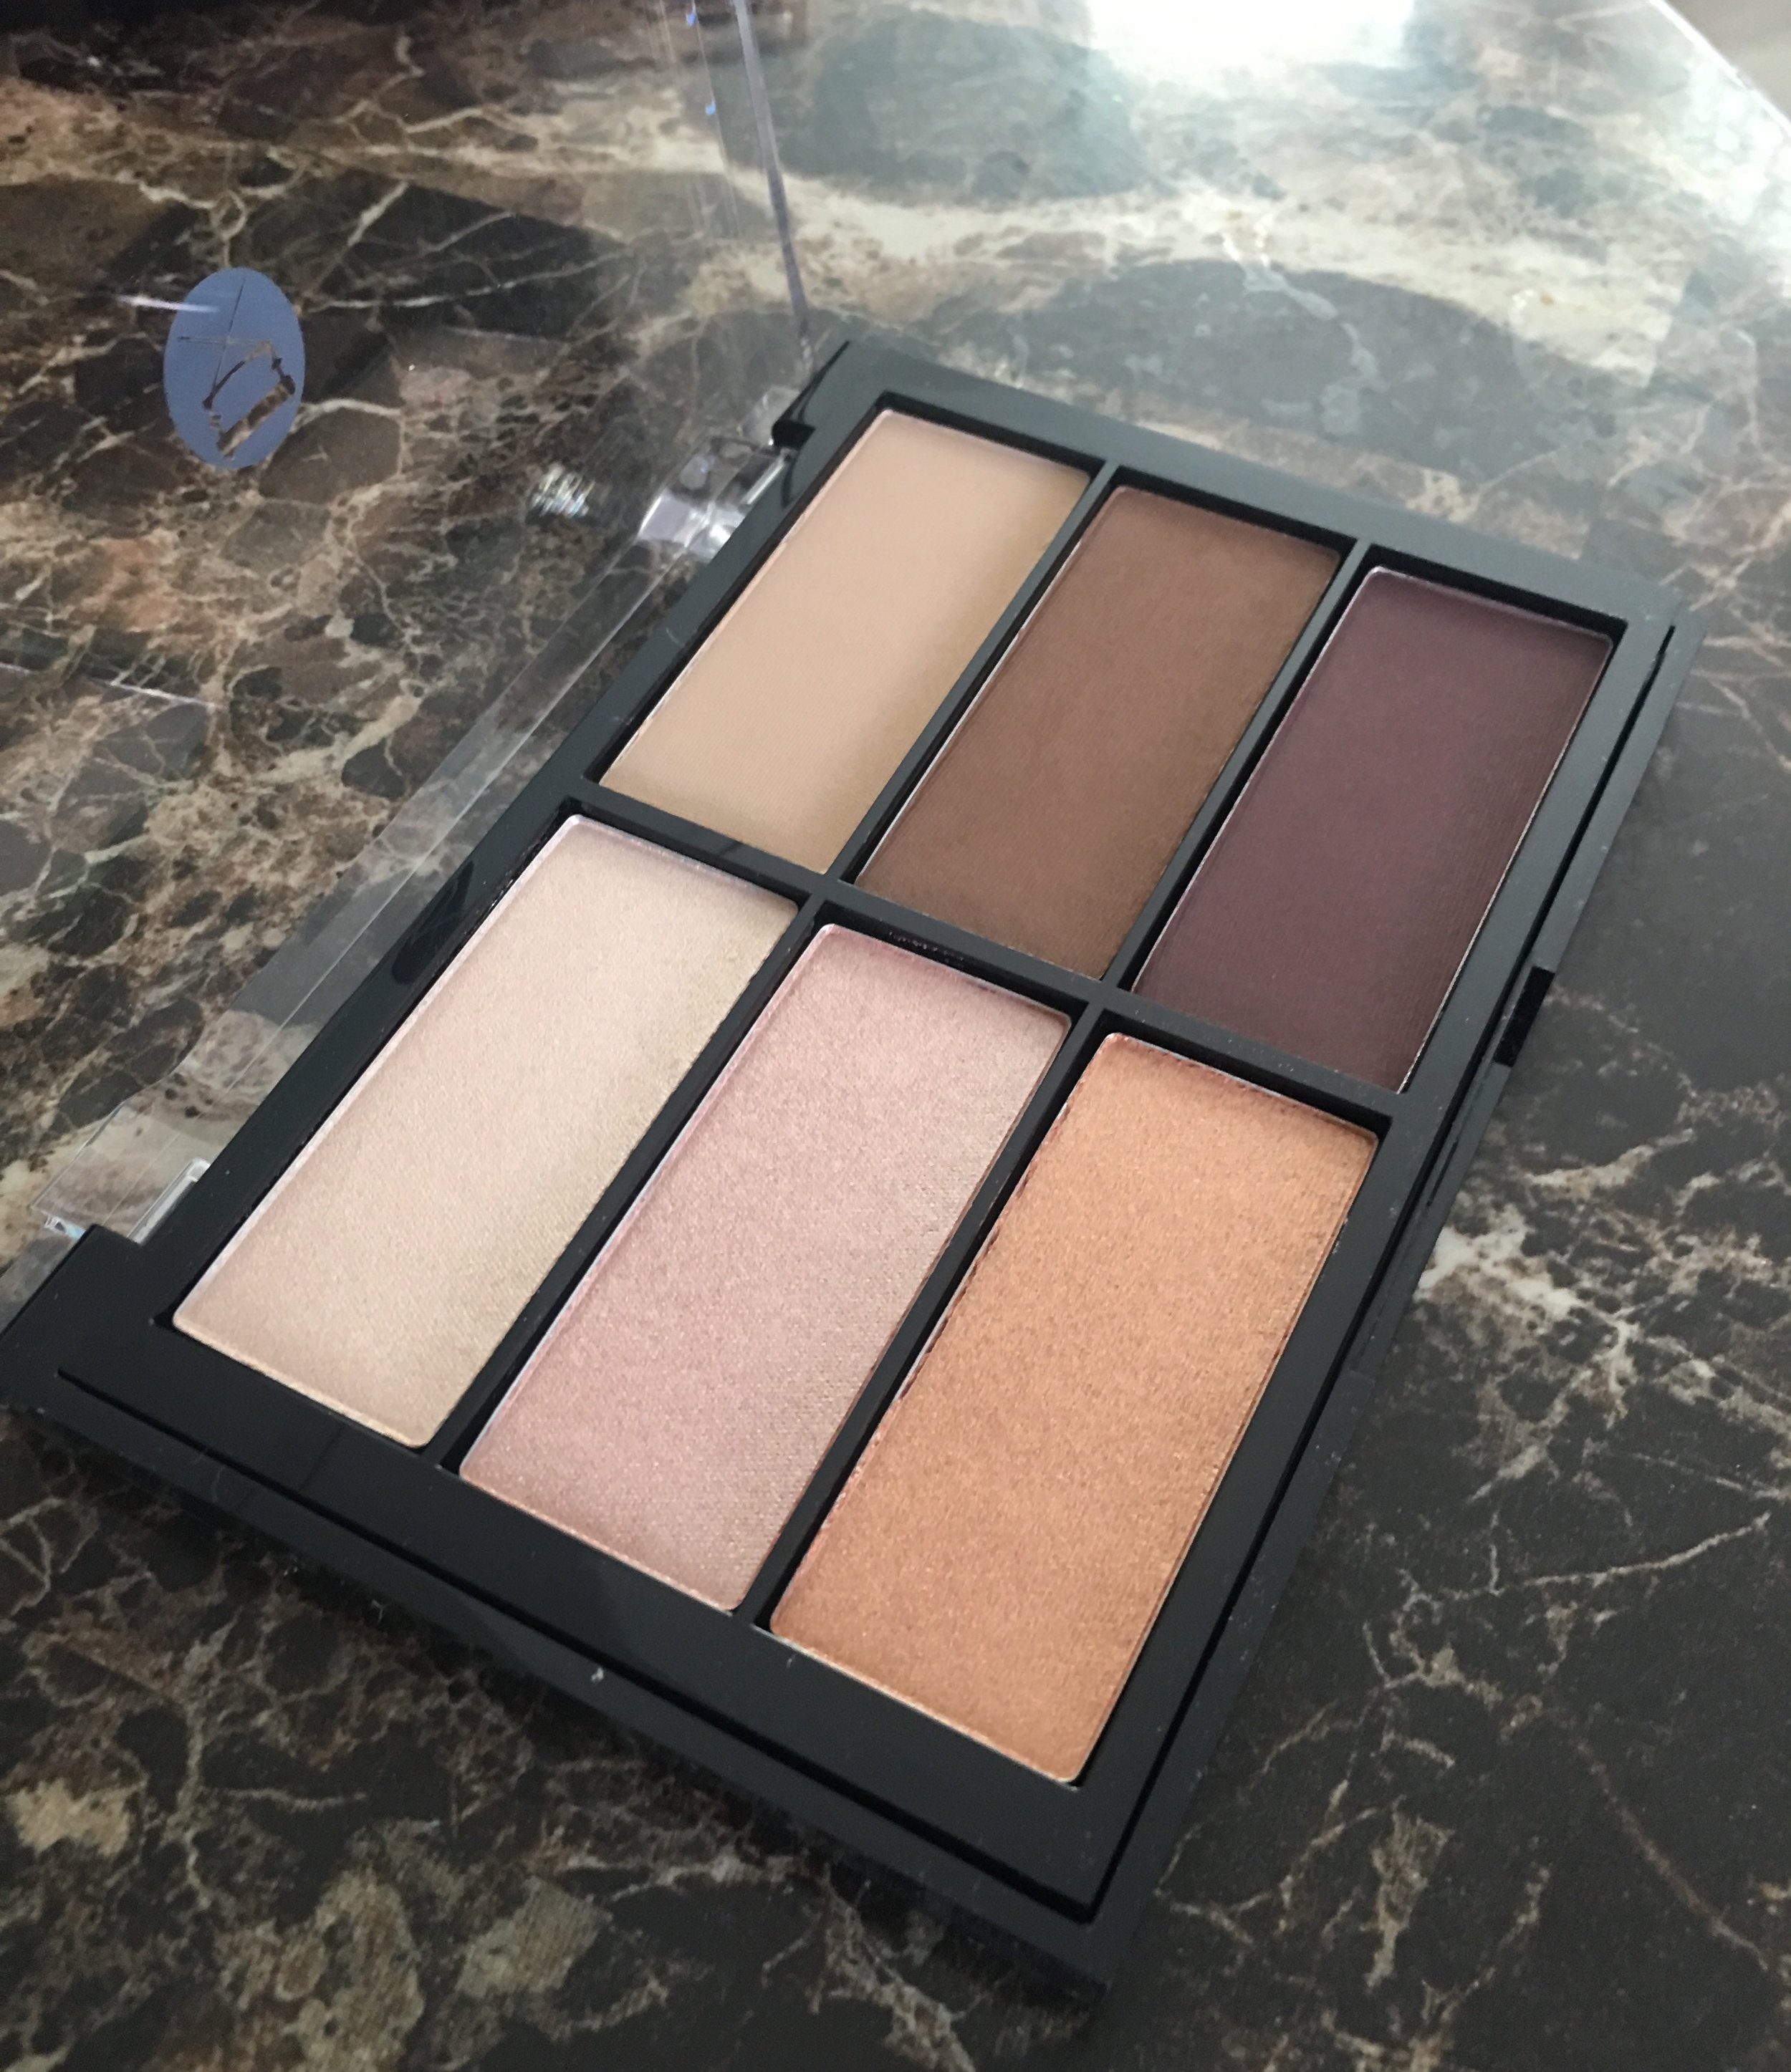 My Viseart palette when it was brand new. On Lindsey I used the top two highlight and top two contour shades.